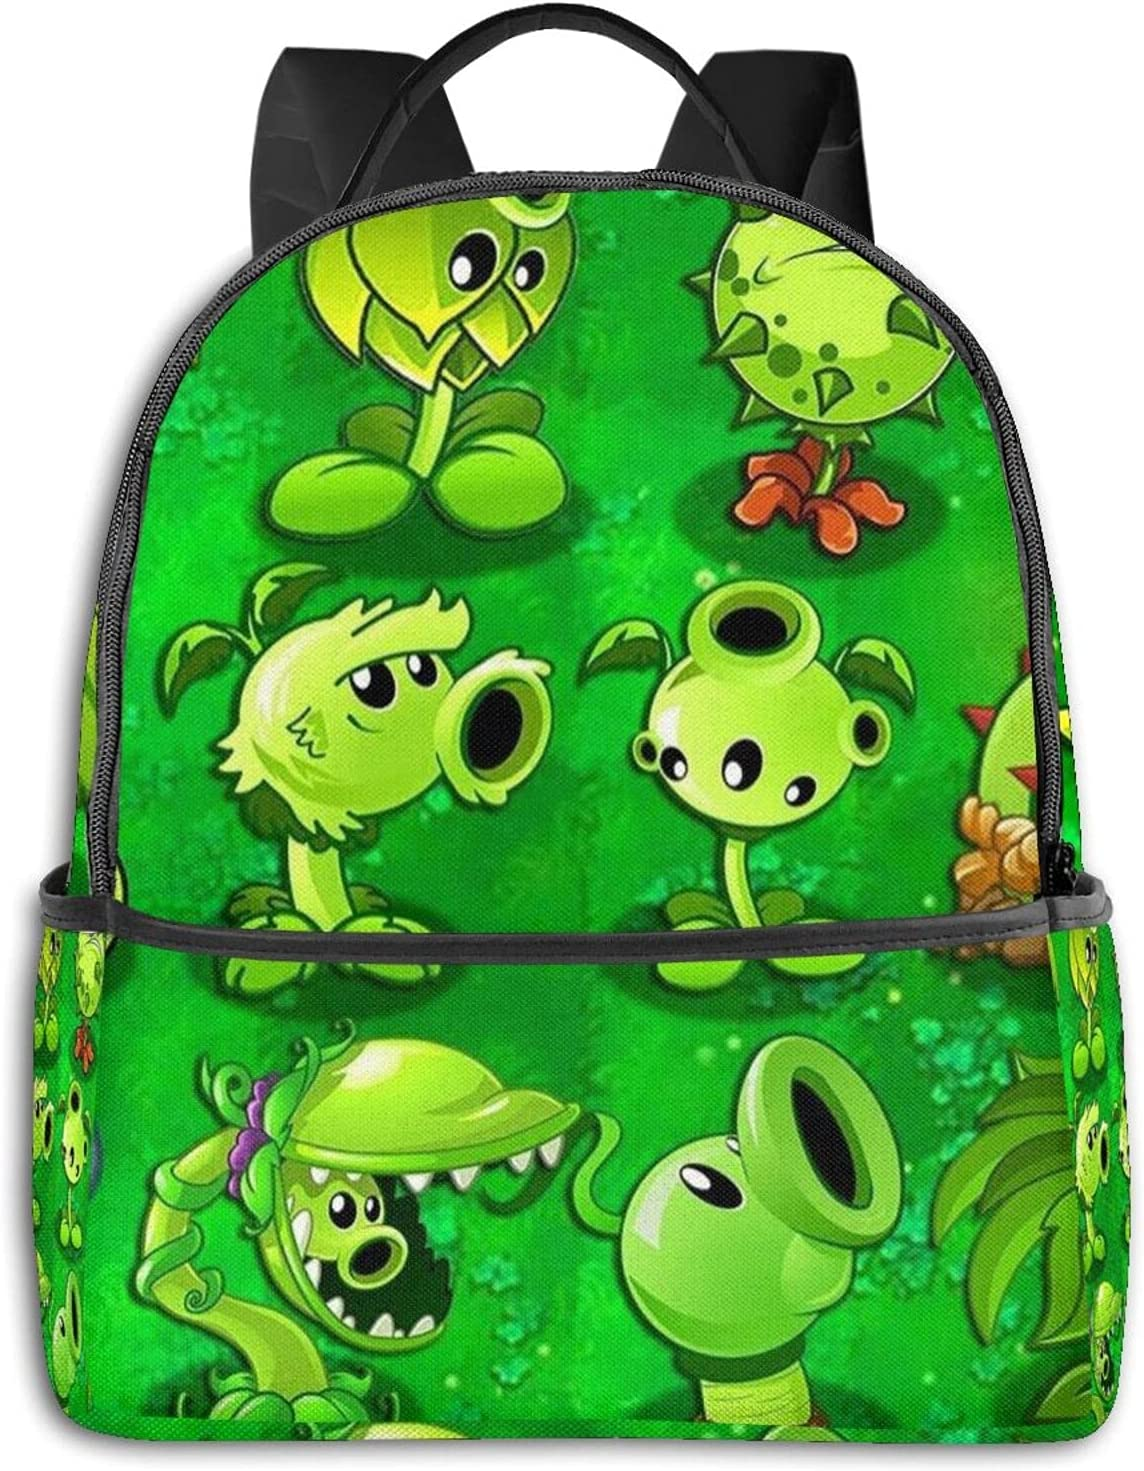 Plants-Vs-Zombies Young Men And Women Popular shop is the lowest price challenge Travel Backpack School Bag It is very popular